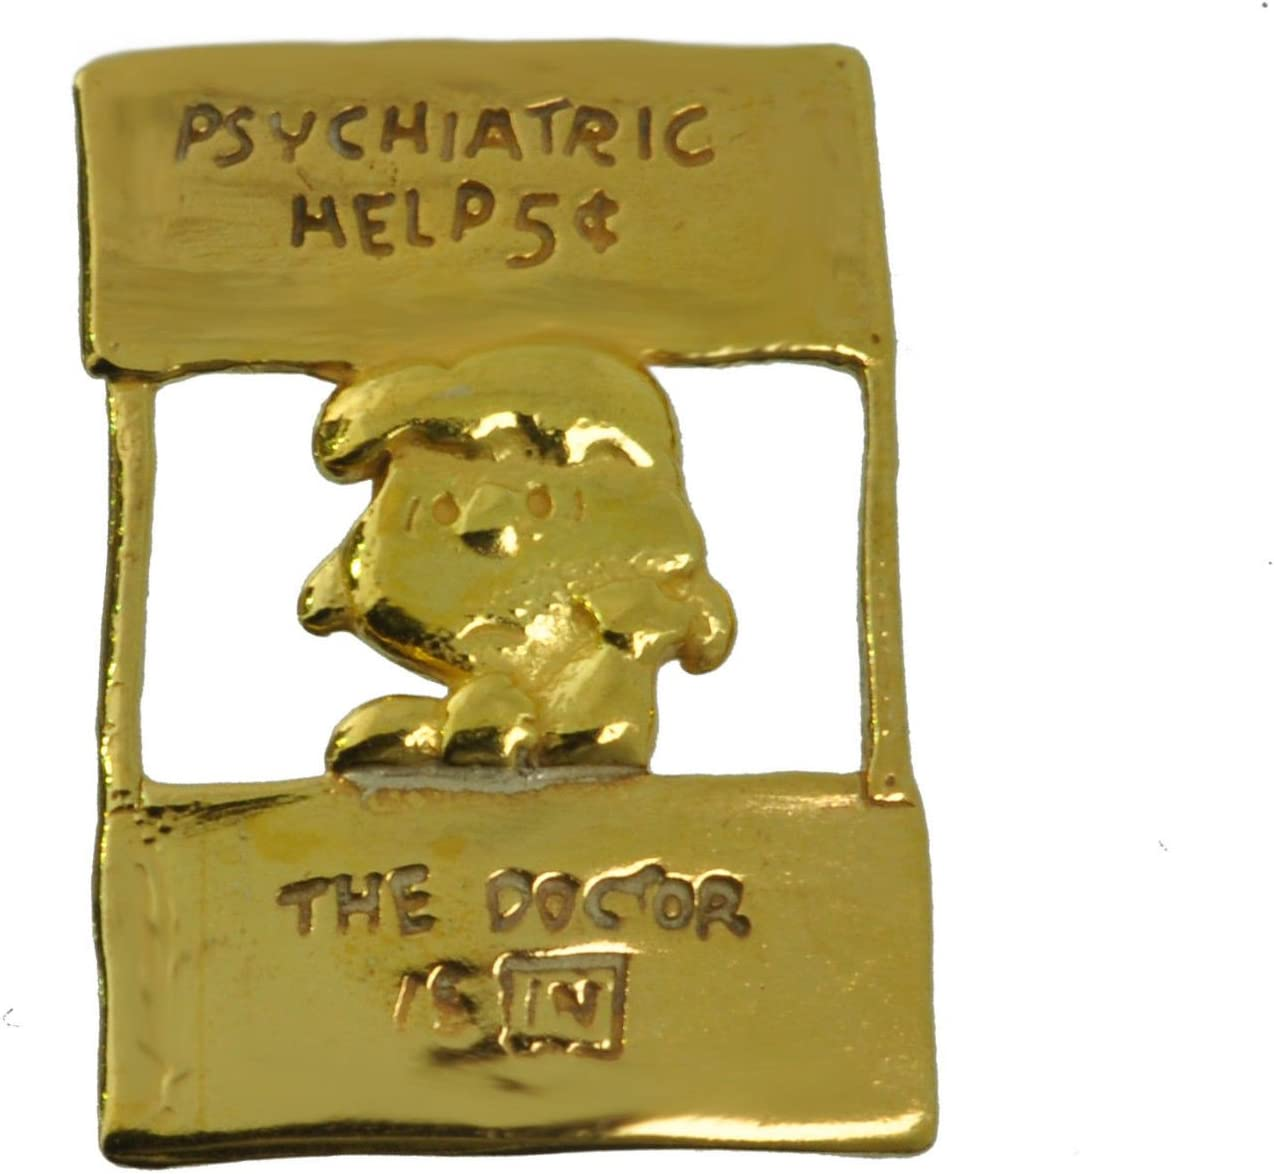 Lucy Charlie Brown charm Peanuts Snoopy 24K Gold Plated Psychiatric help Doctor